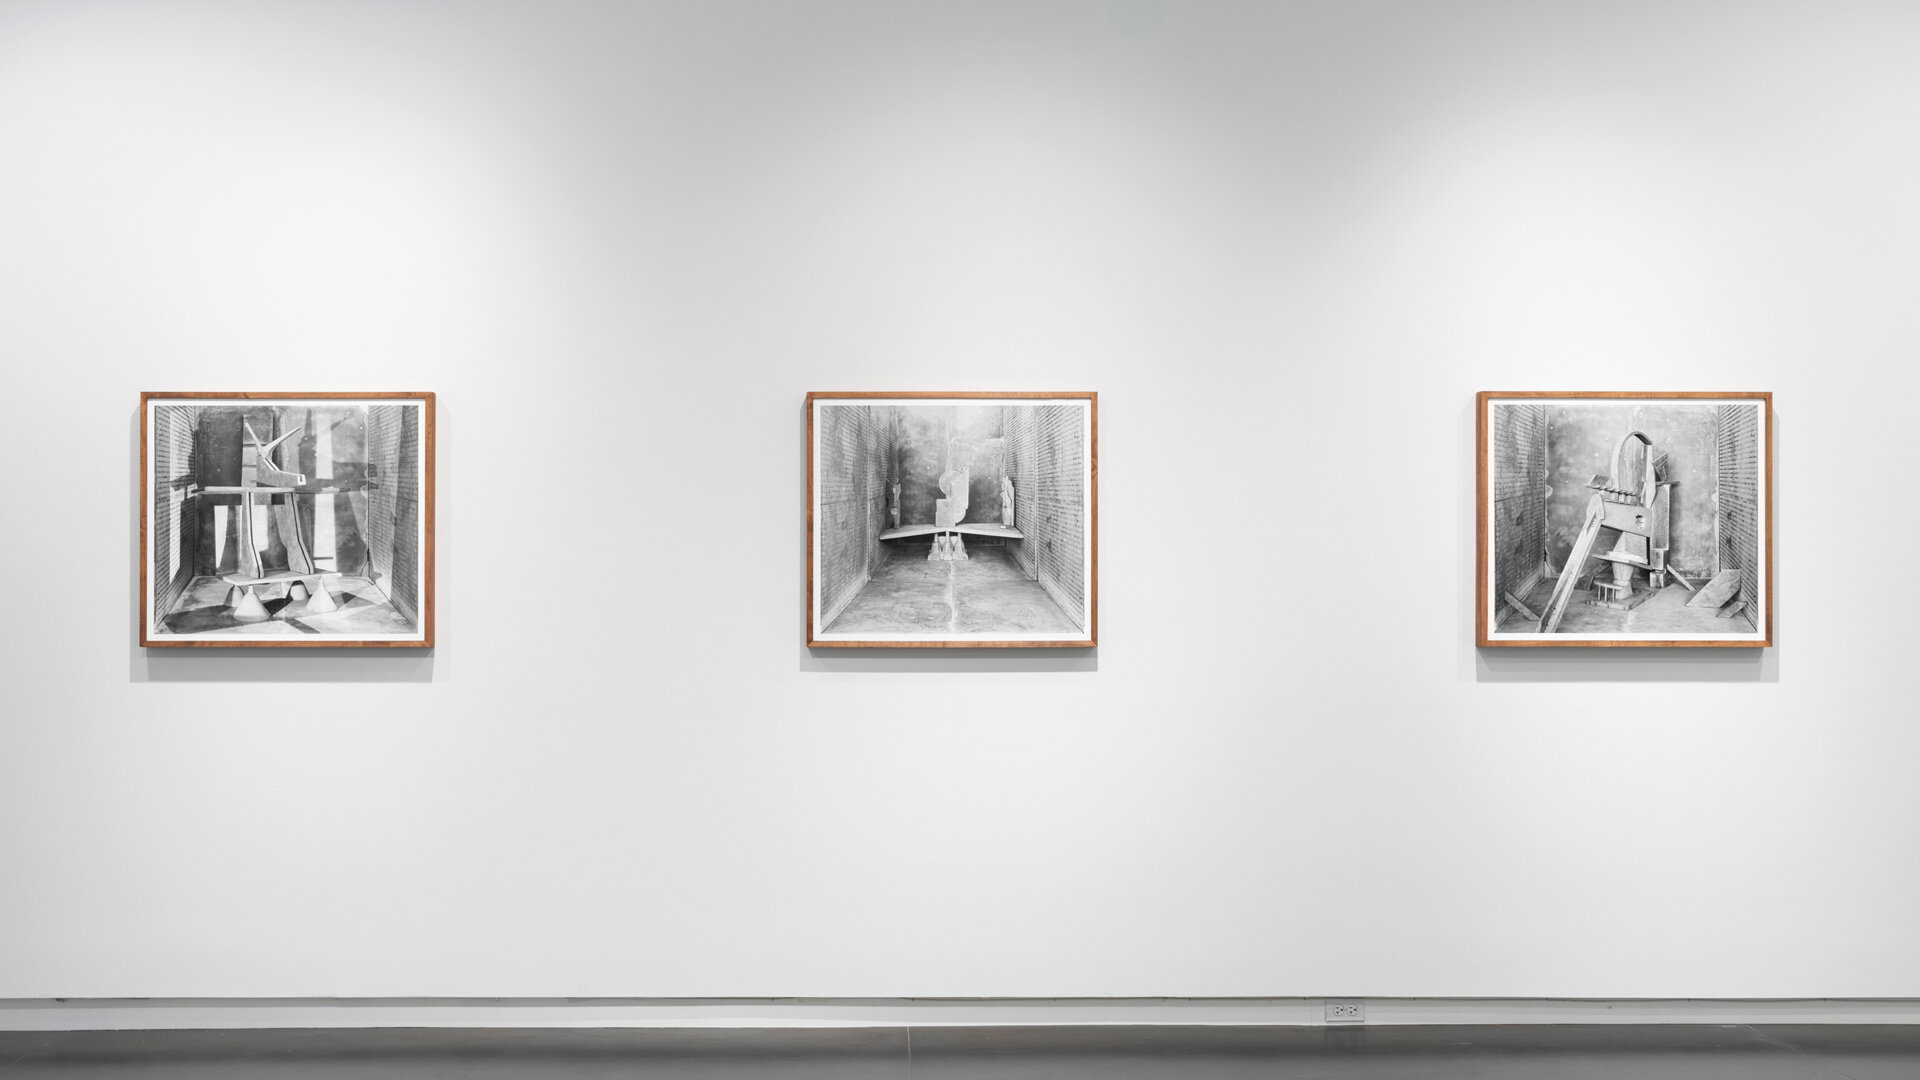 Stature No. 10  ,  No. 7 , and  No. 4  each: 2019, archival pigment print mounted on Sintra, artist frame 29 x 33 inches (framed), edition of 1 plus 1 AP